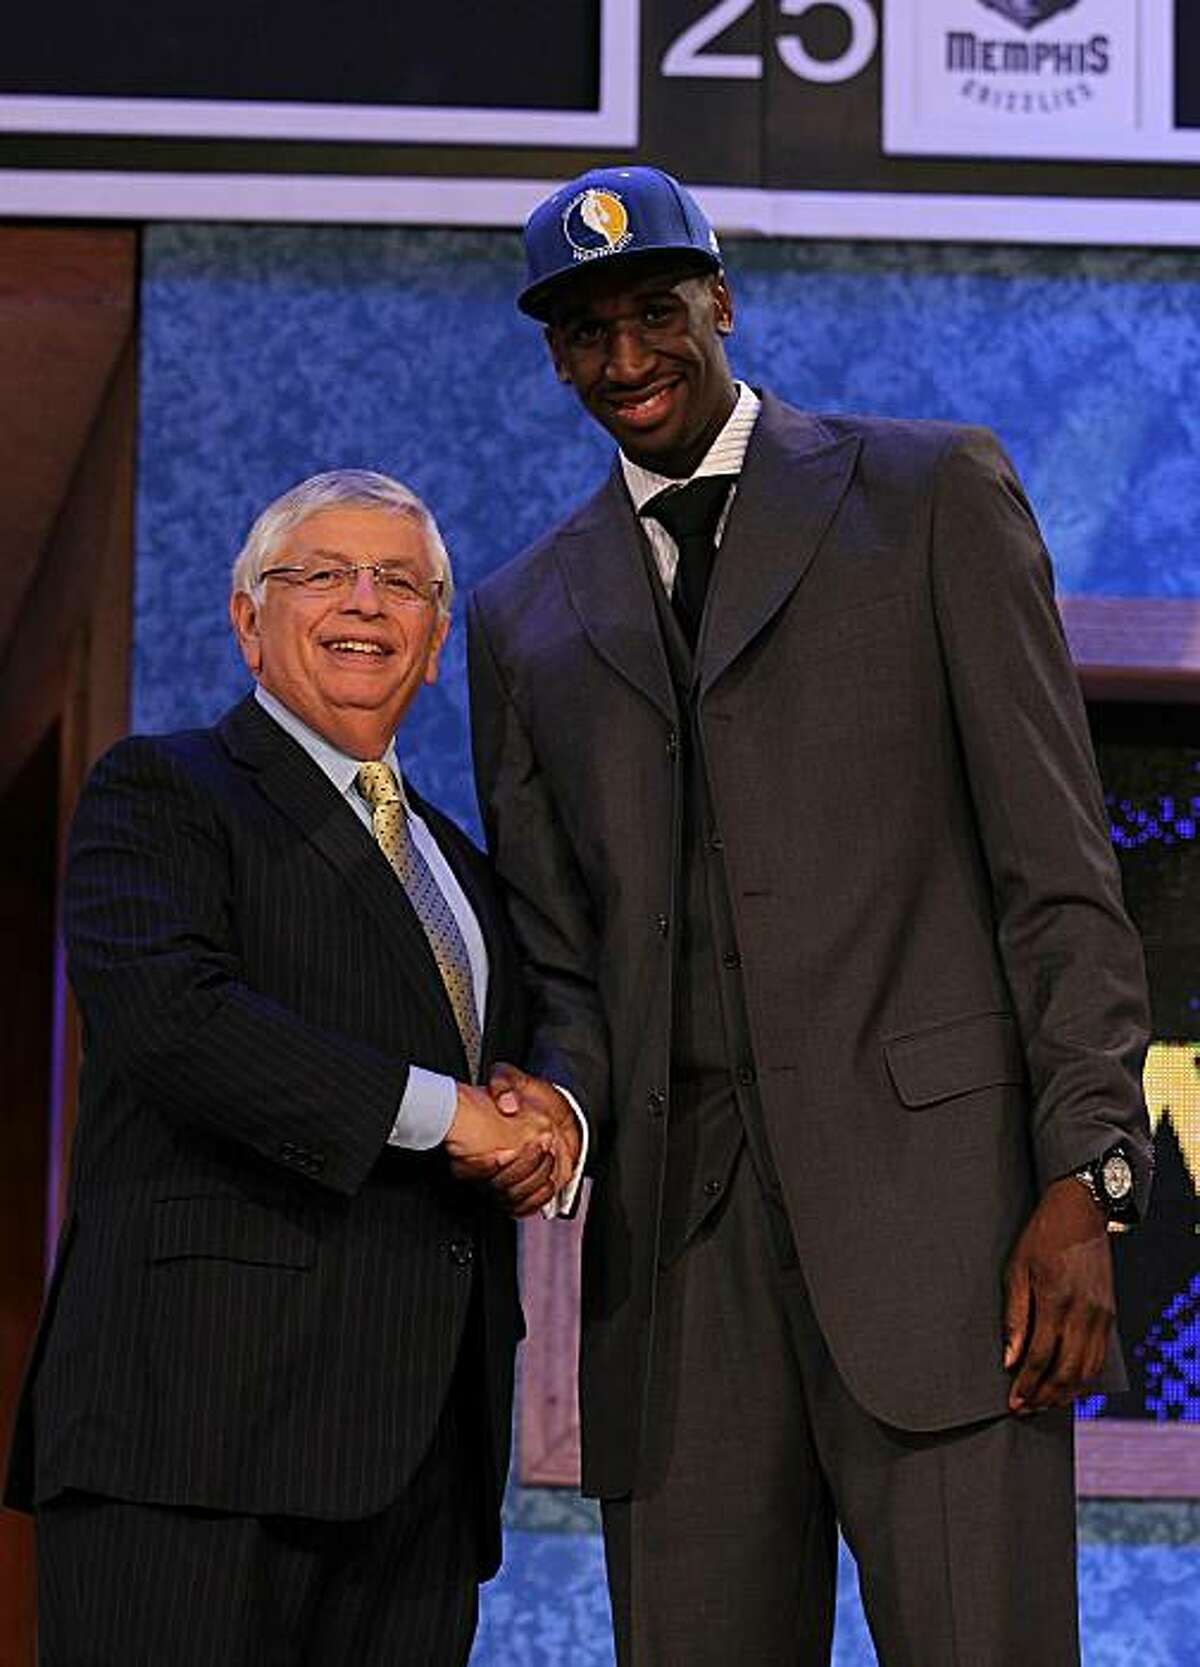 NEW YORK - JUNE 24: Ekpe Udoh stands with NBA Commisioner David Stern after being drafted sixth by The Golden State warriors at Madison Square Garden on June 24, 2010 in New York City. NOTE TO USER: User expressly acknowledges and agrees that, by downloading and or using this photograph, User is consenting to the terms and conditions of the Getty Images License Agreement.